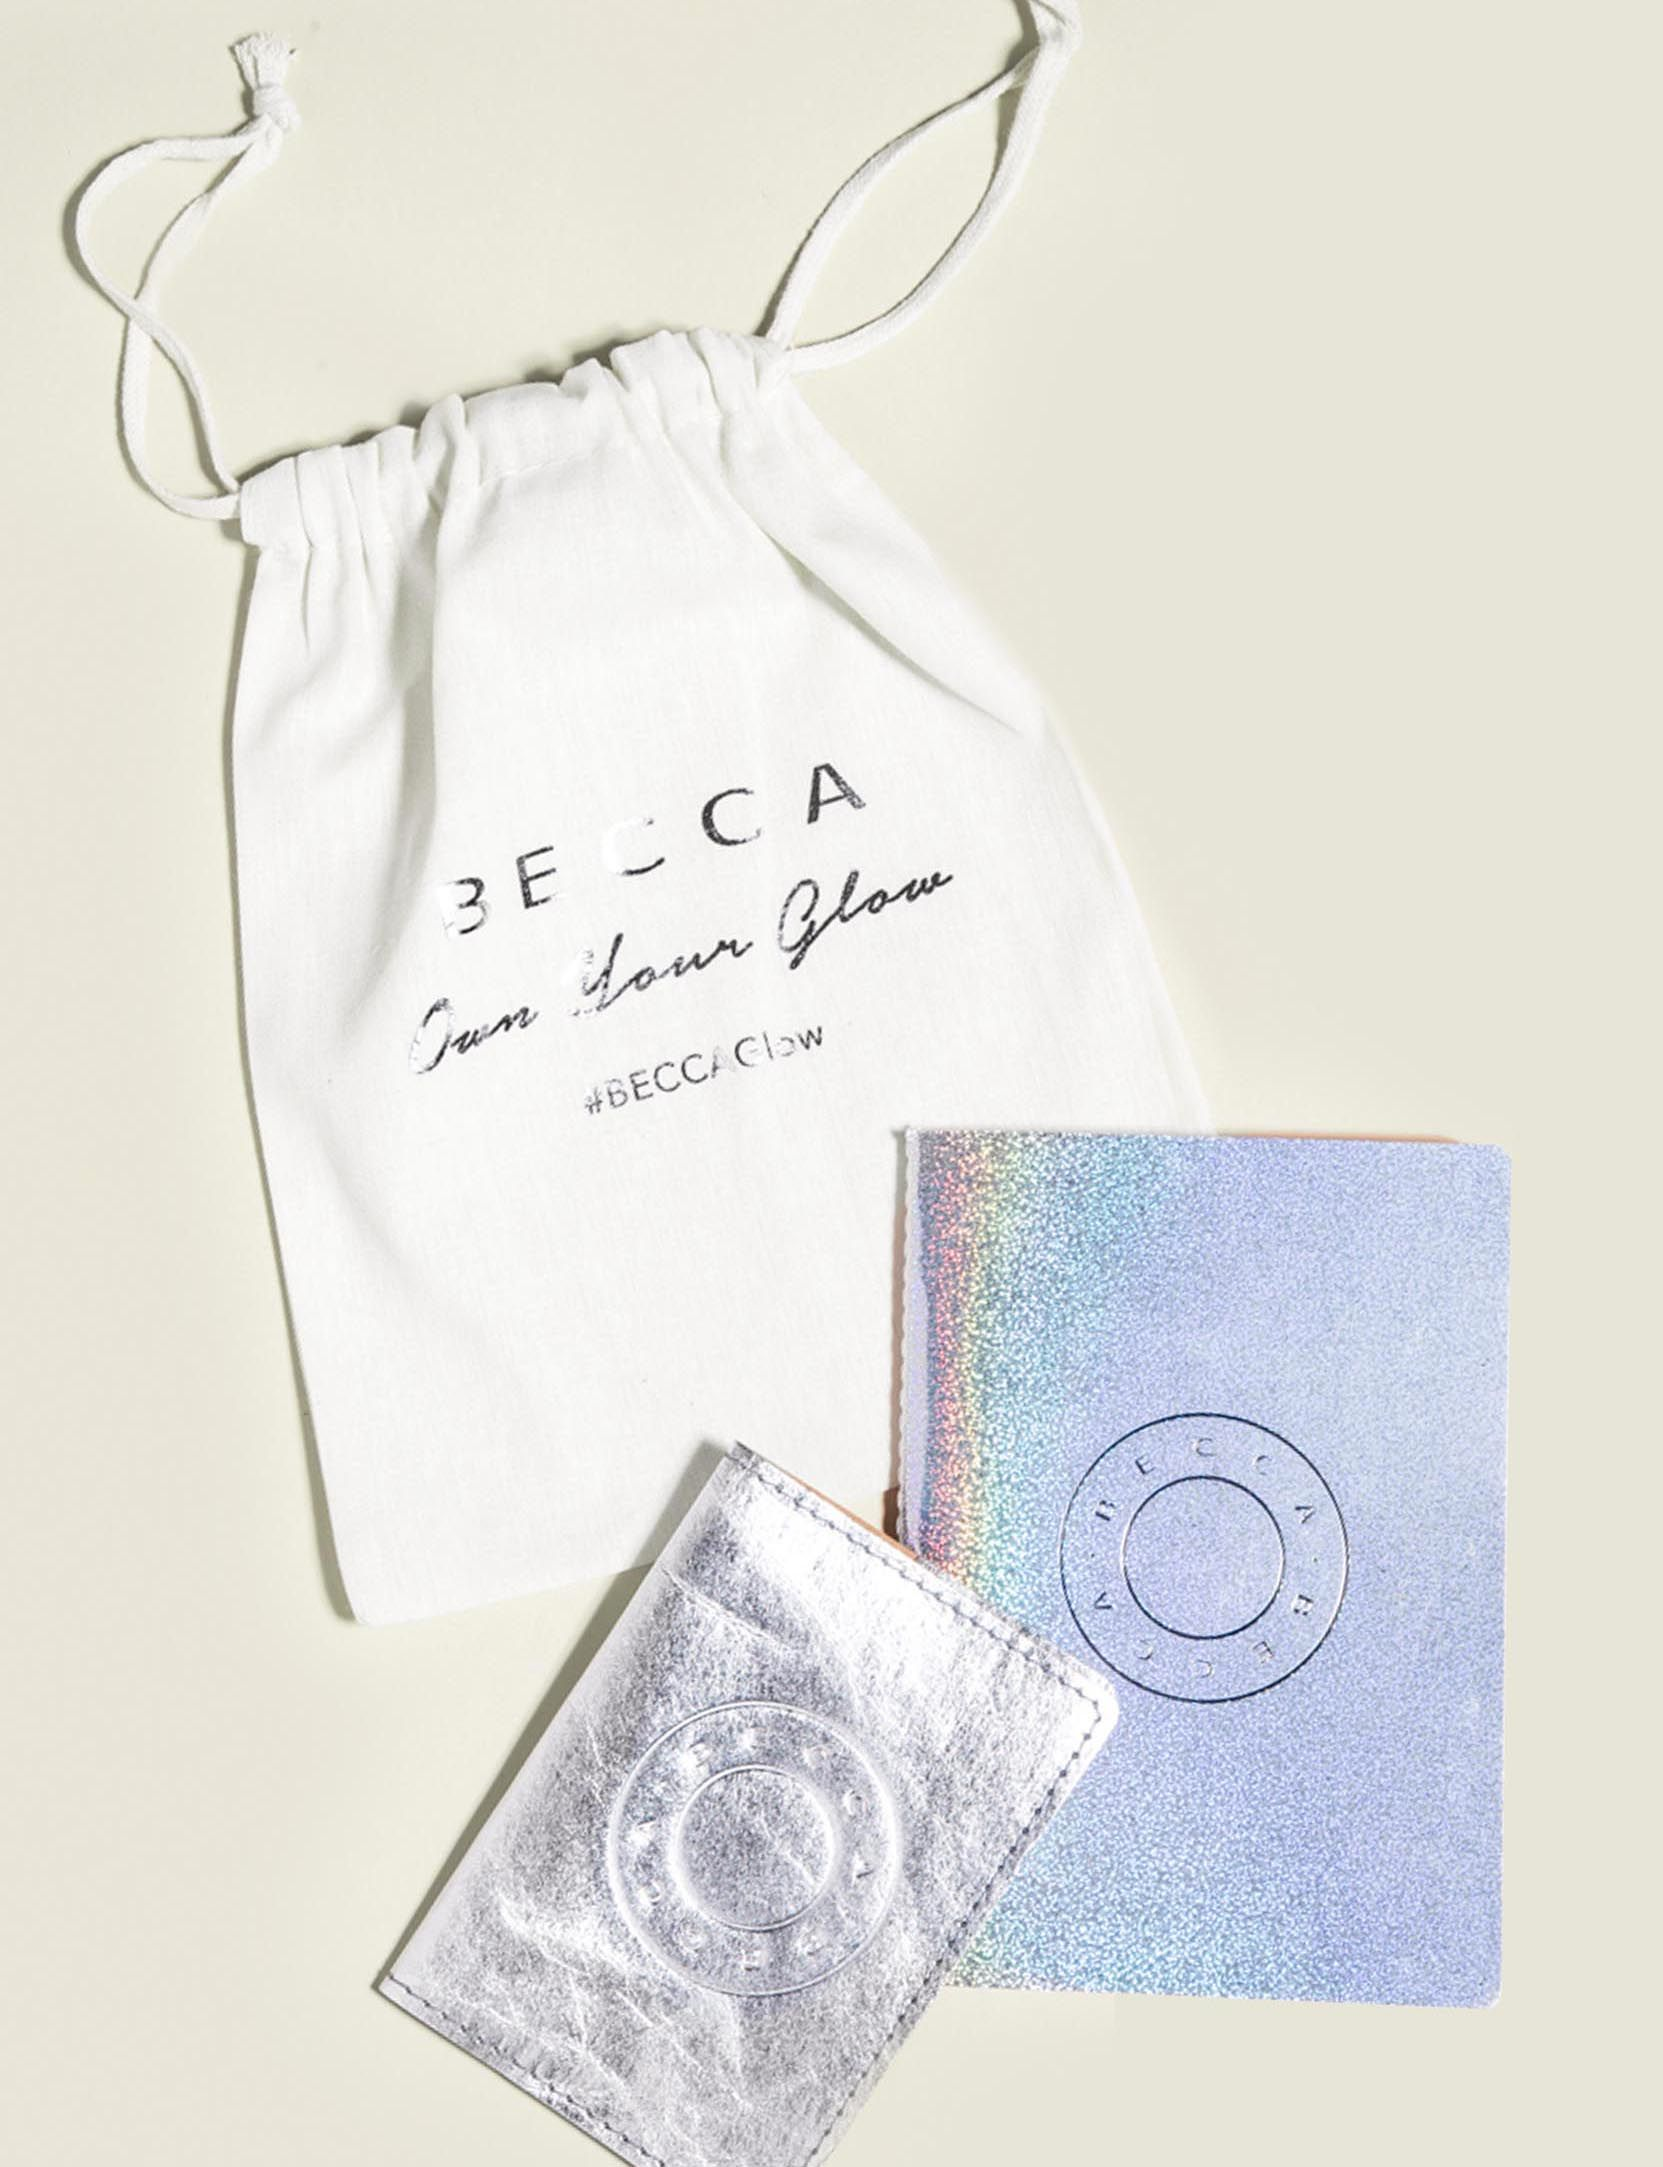 Drawstring pouch with journal and wallet